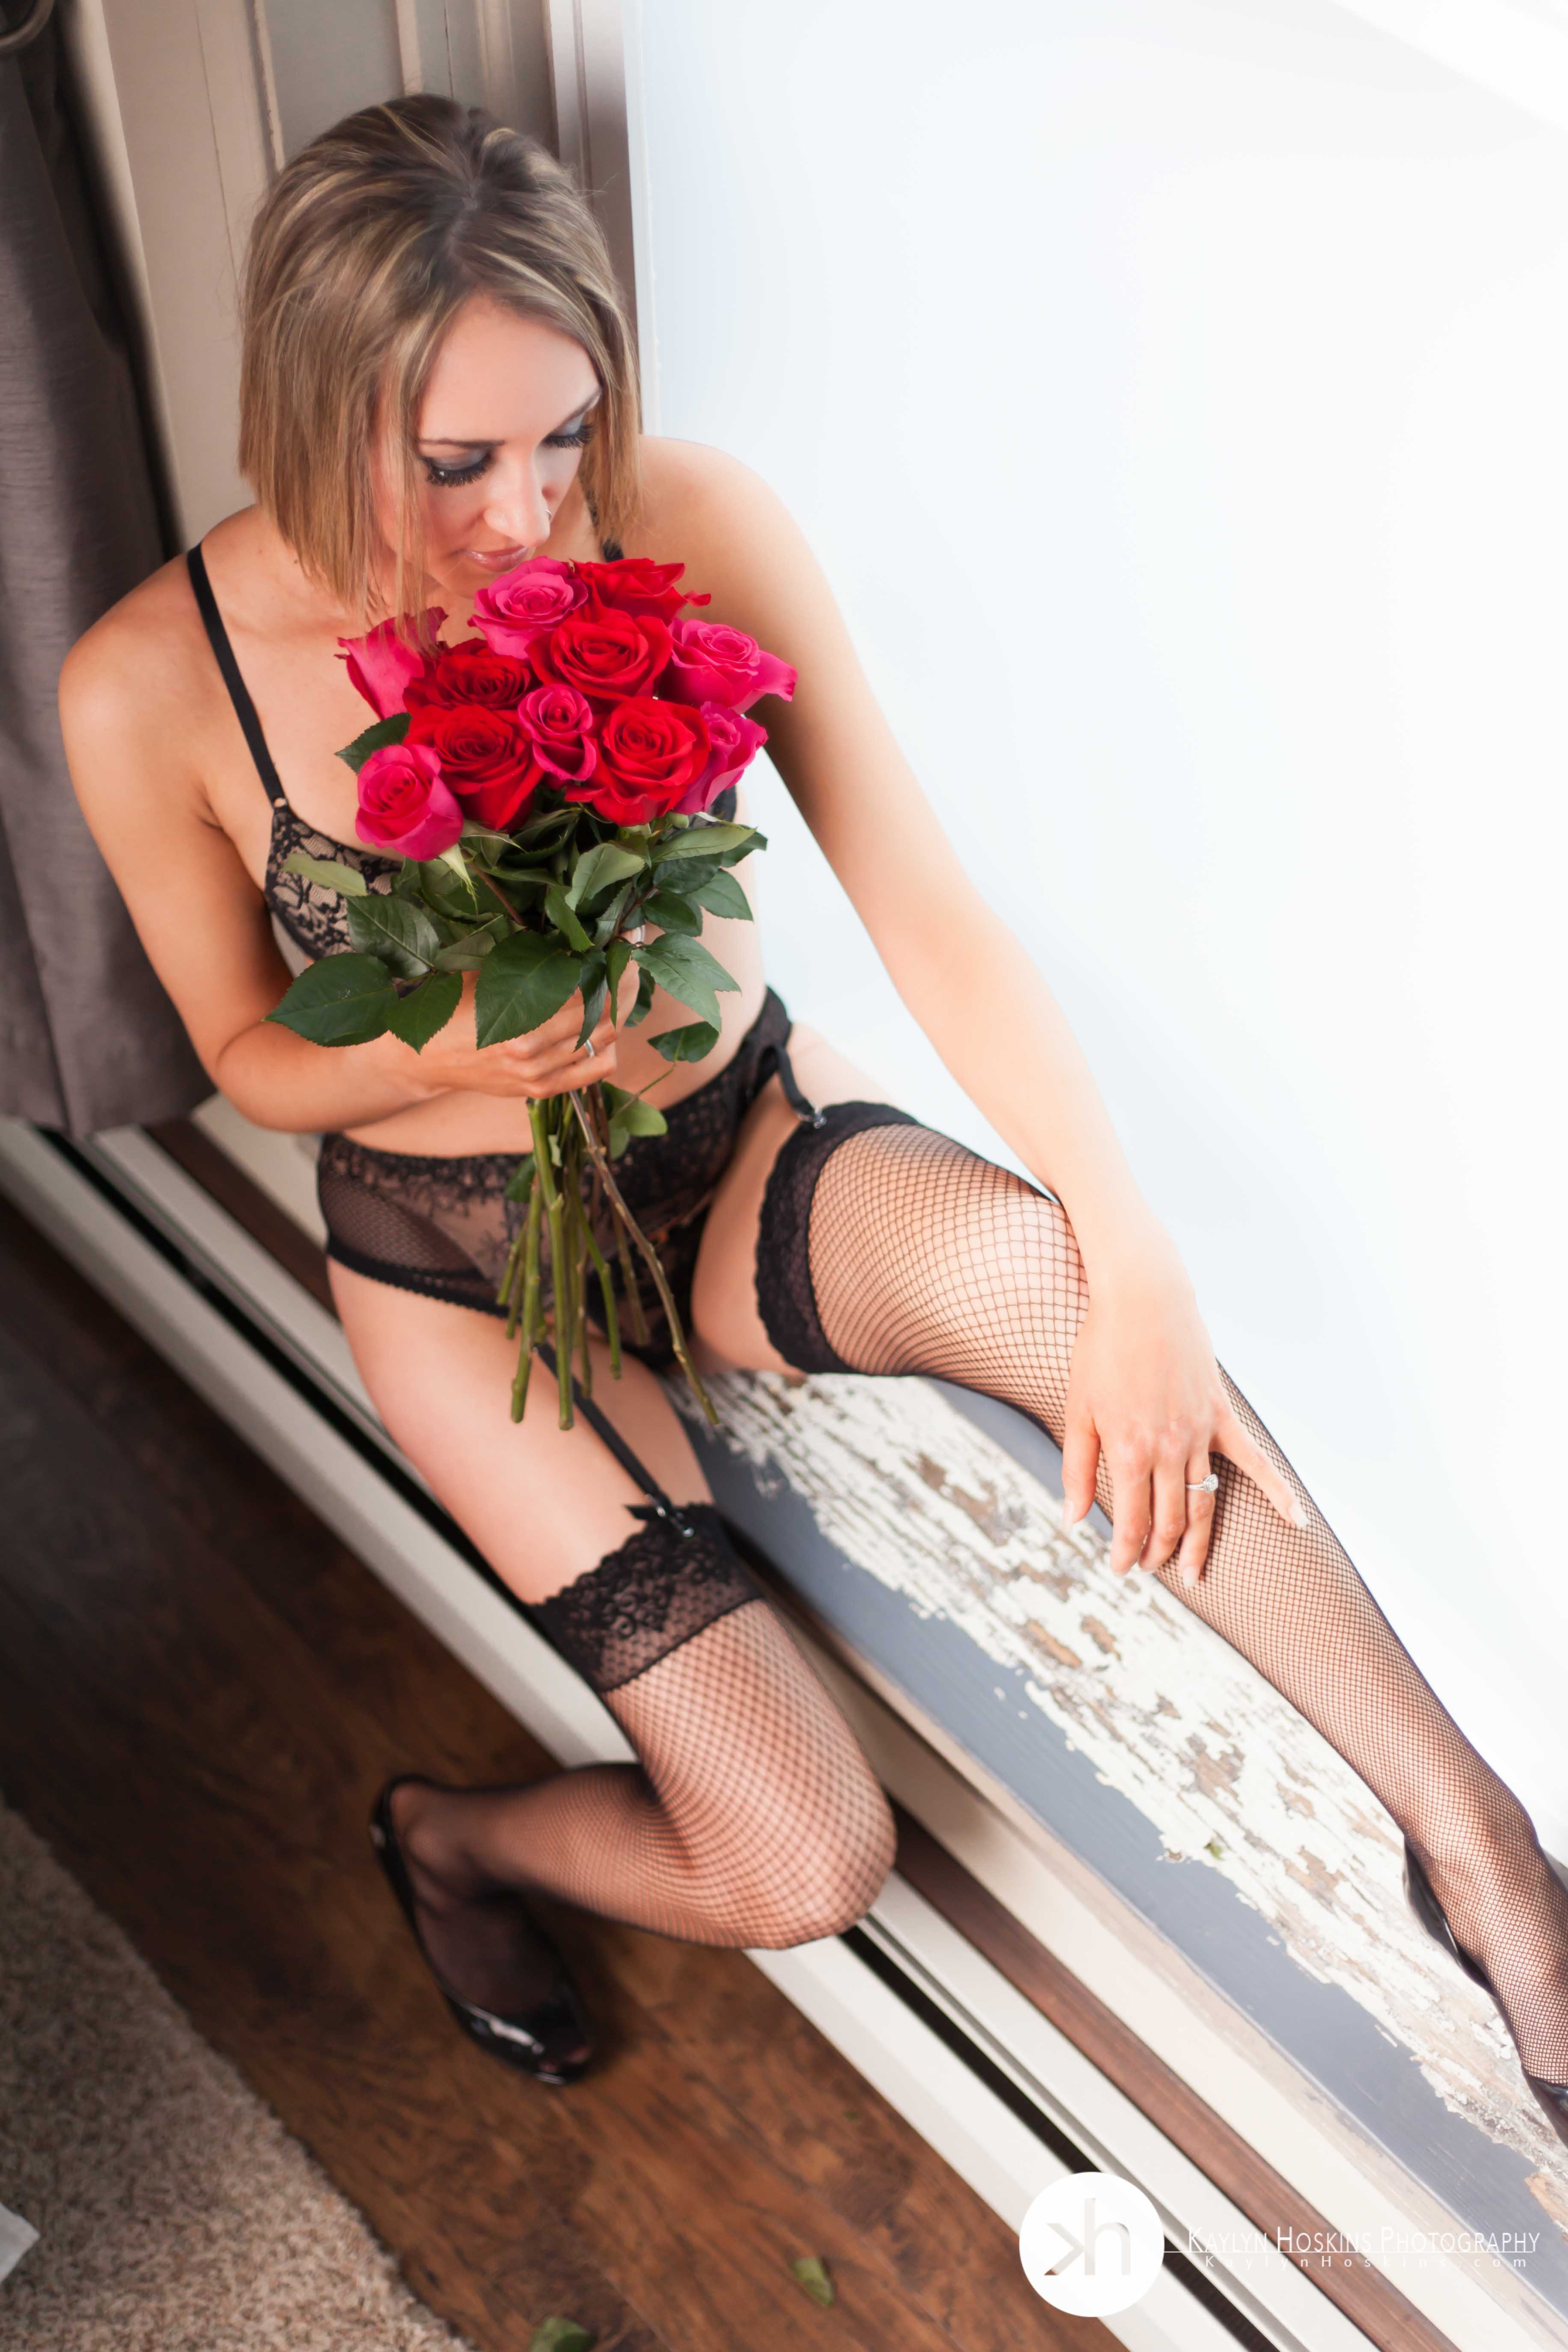 Beautiful woman sitting in window smelling dozen roses during boudoir session